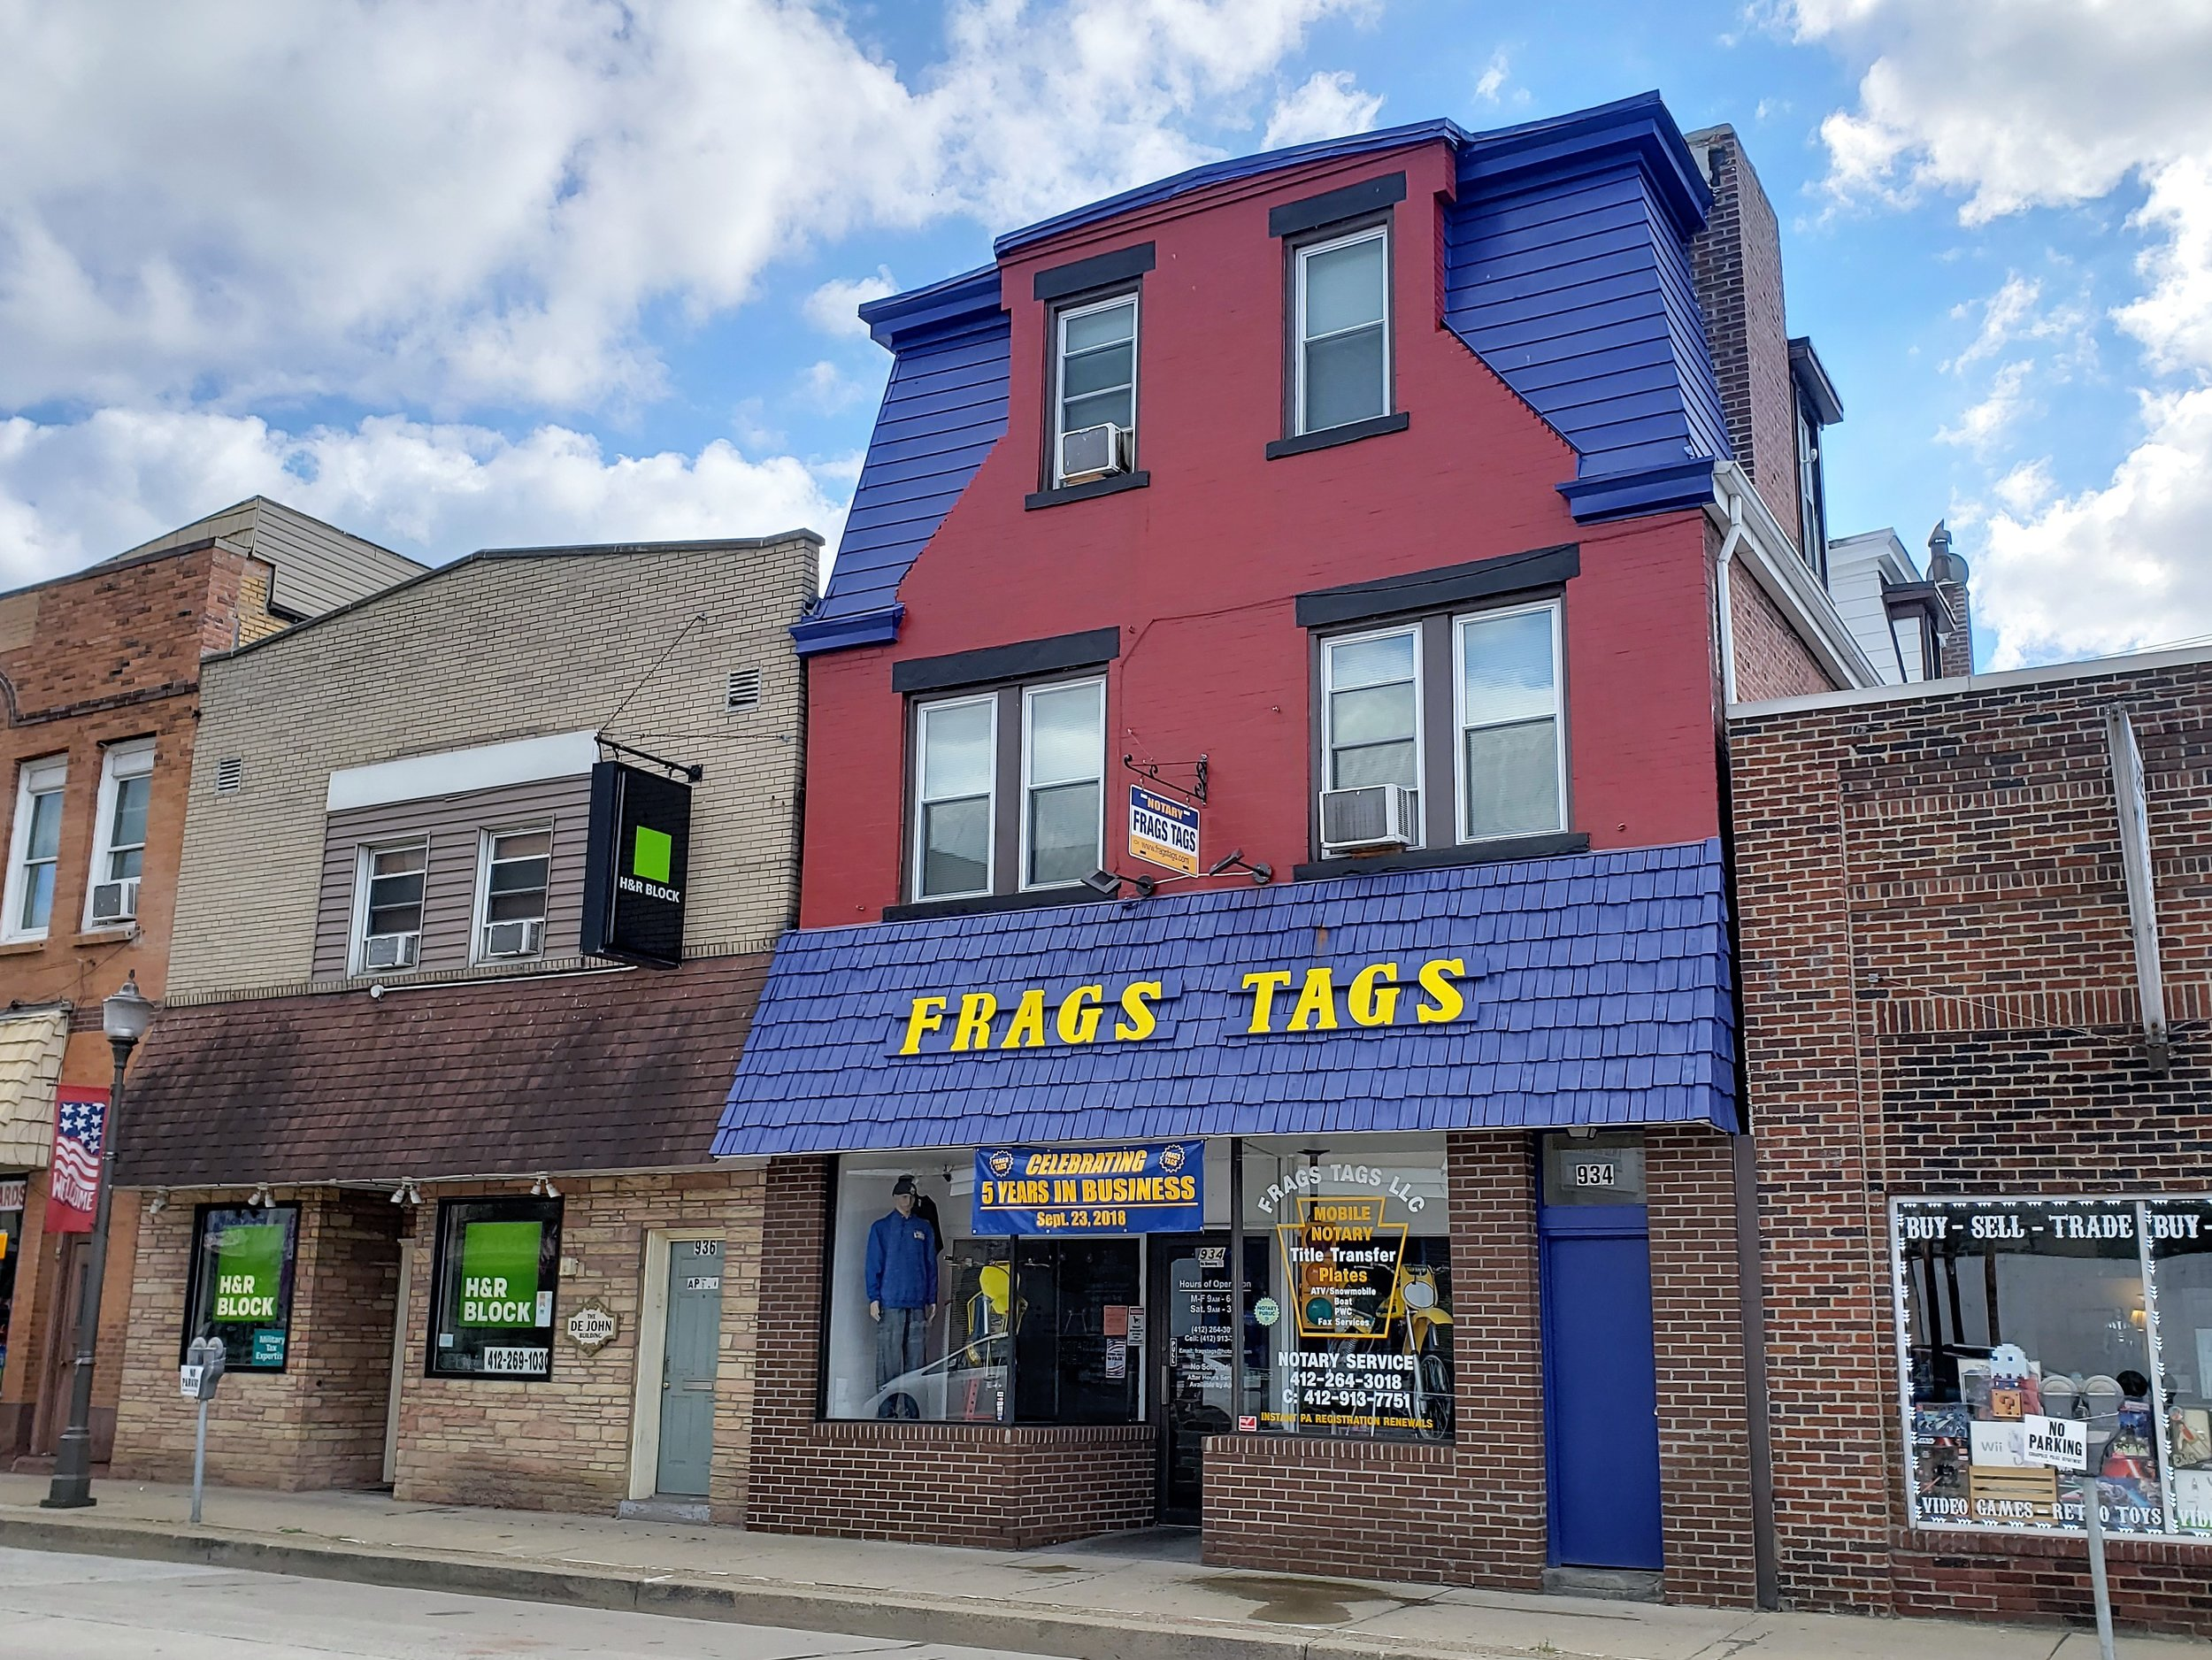 Frags Tags LLC - 934 5th Ave, (412) 264-3018